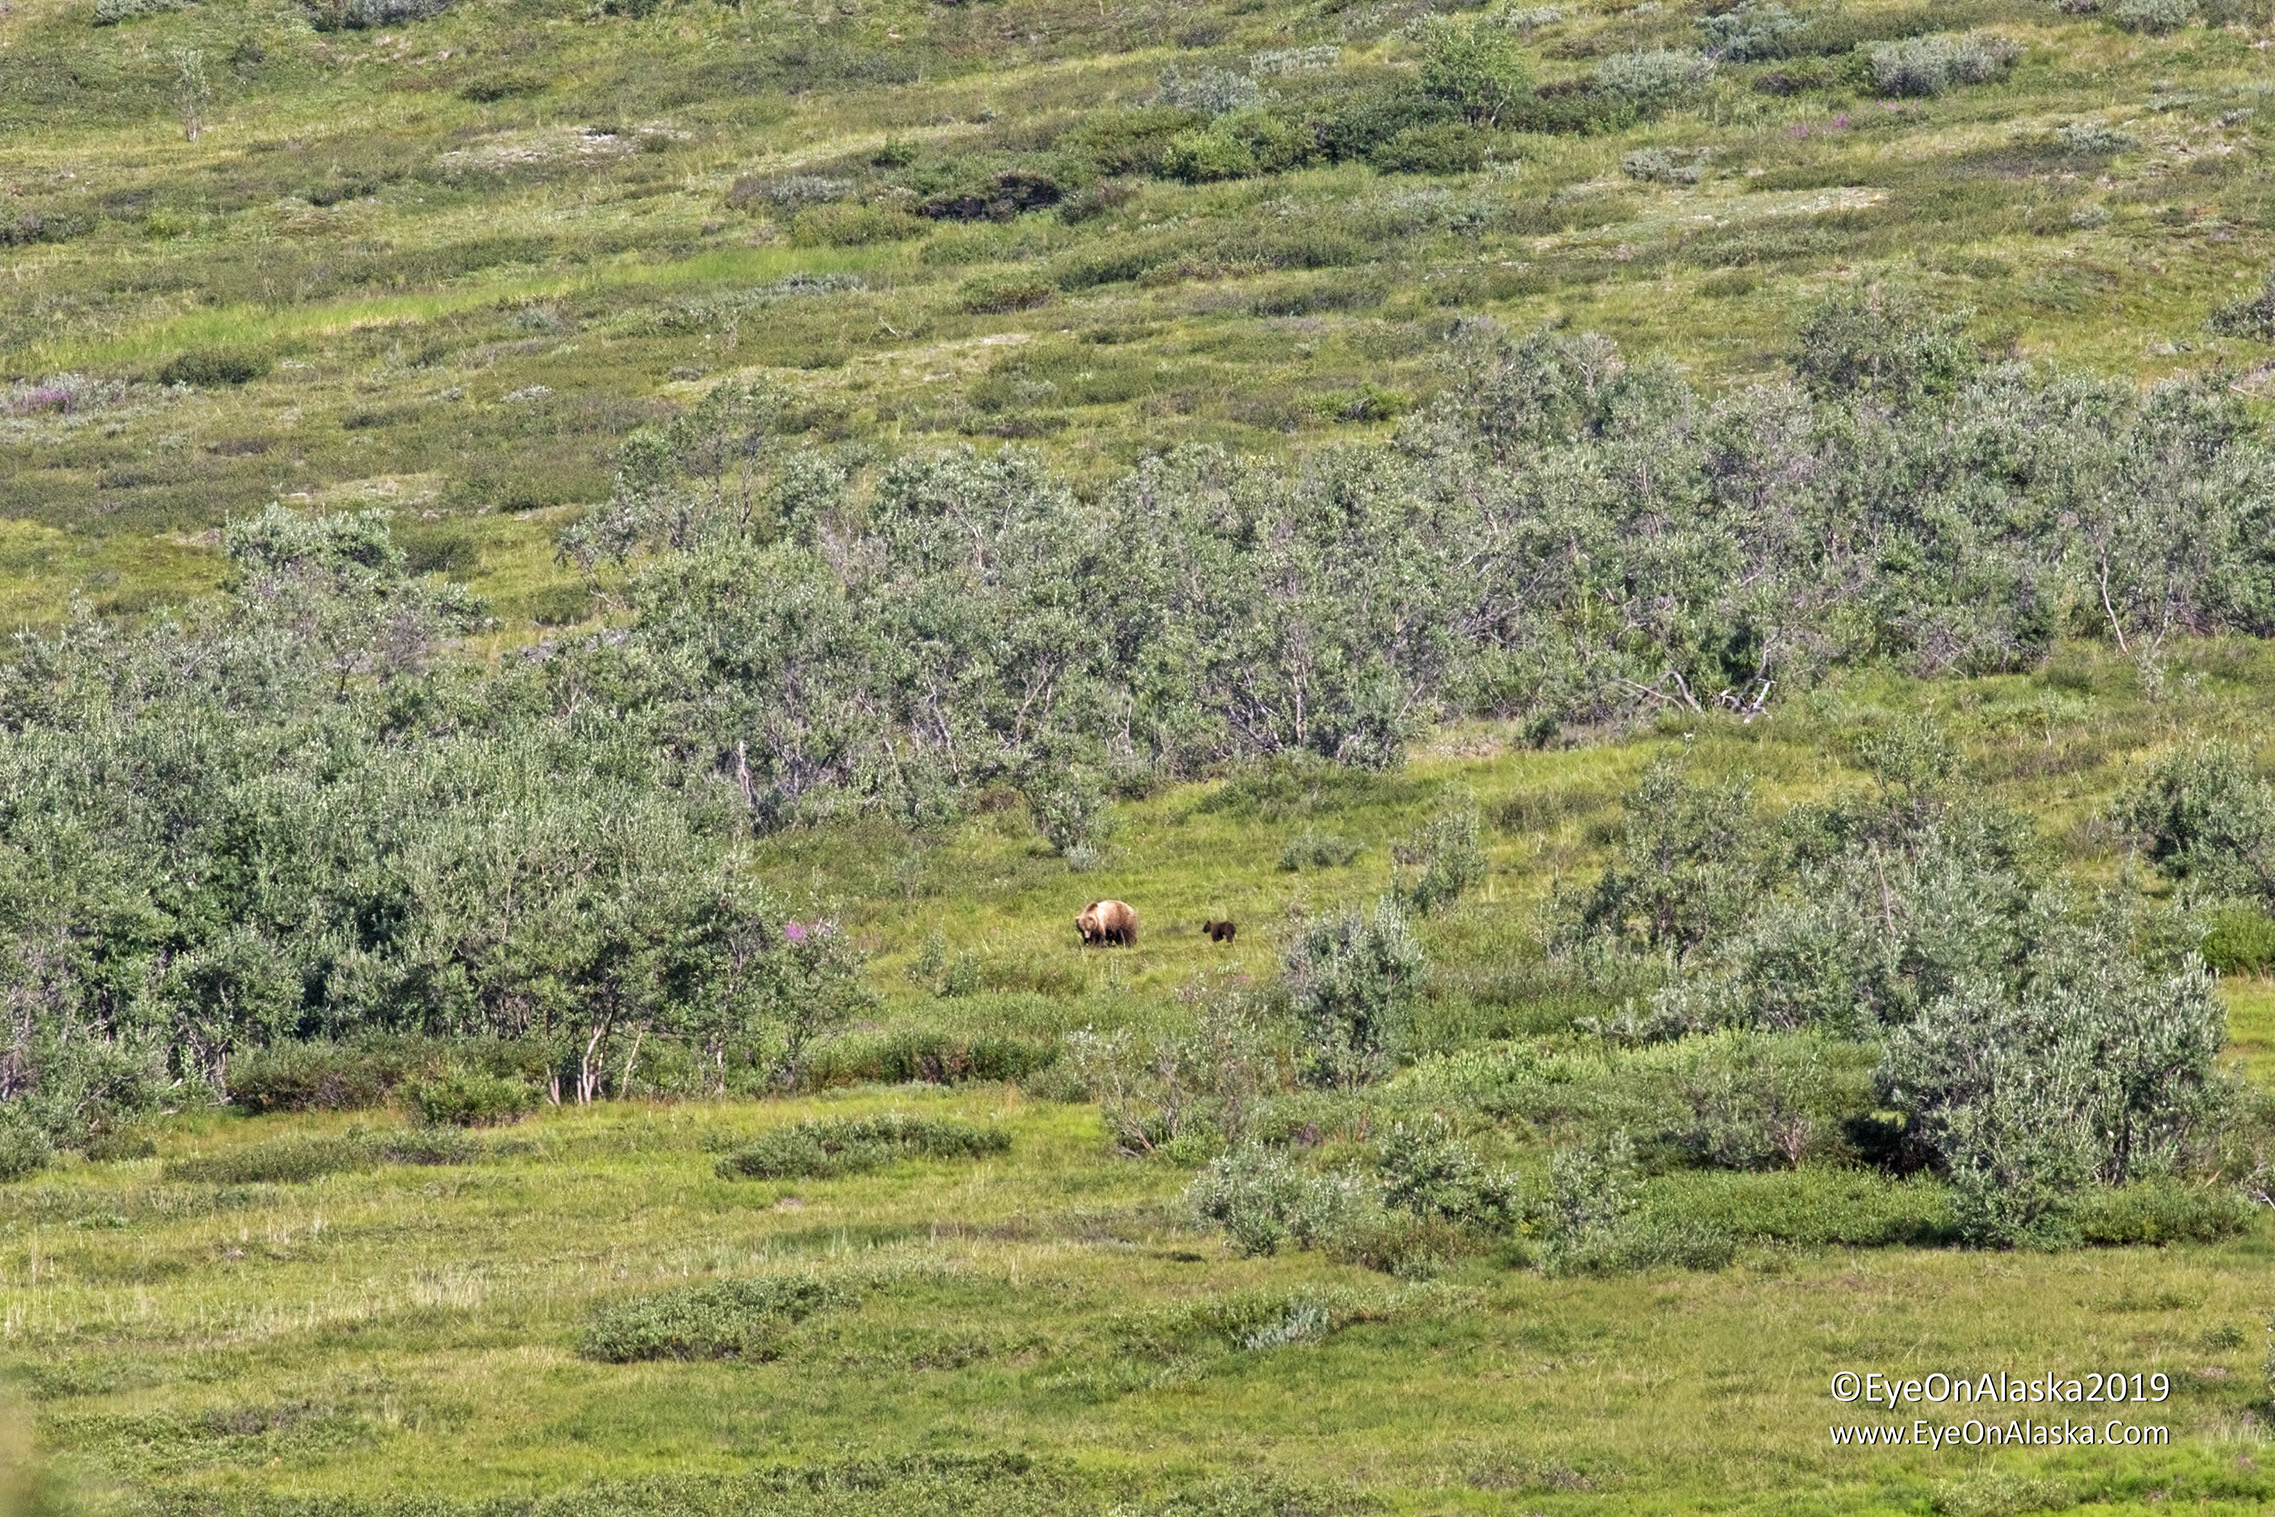 And there's mama bear and spring cubs again in almost the same spot as yesterday.  We sat and watched them for quite awhile.